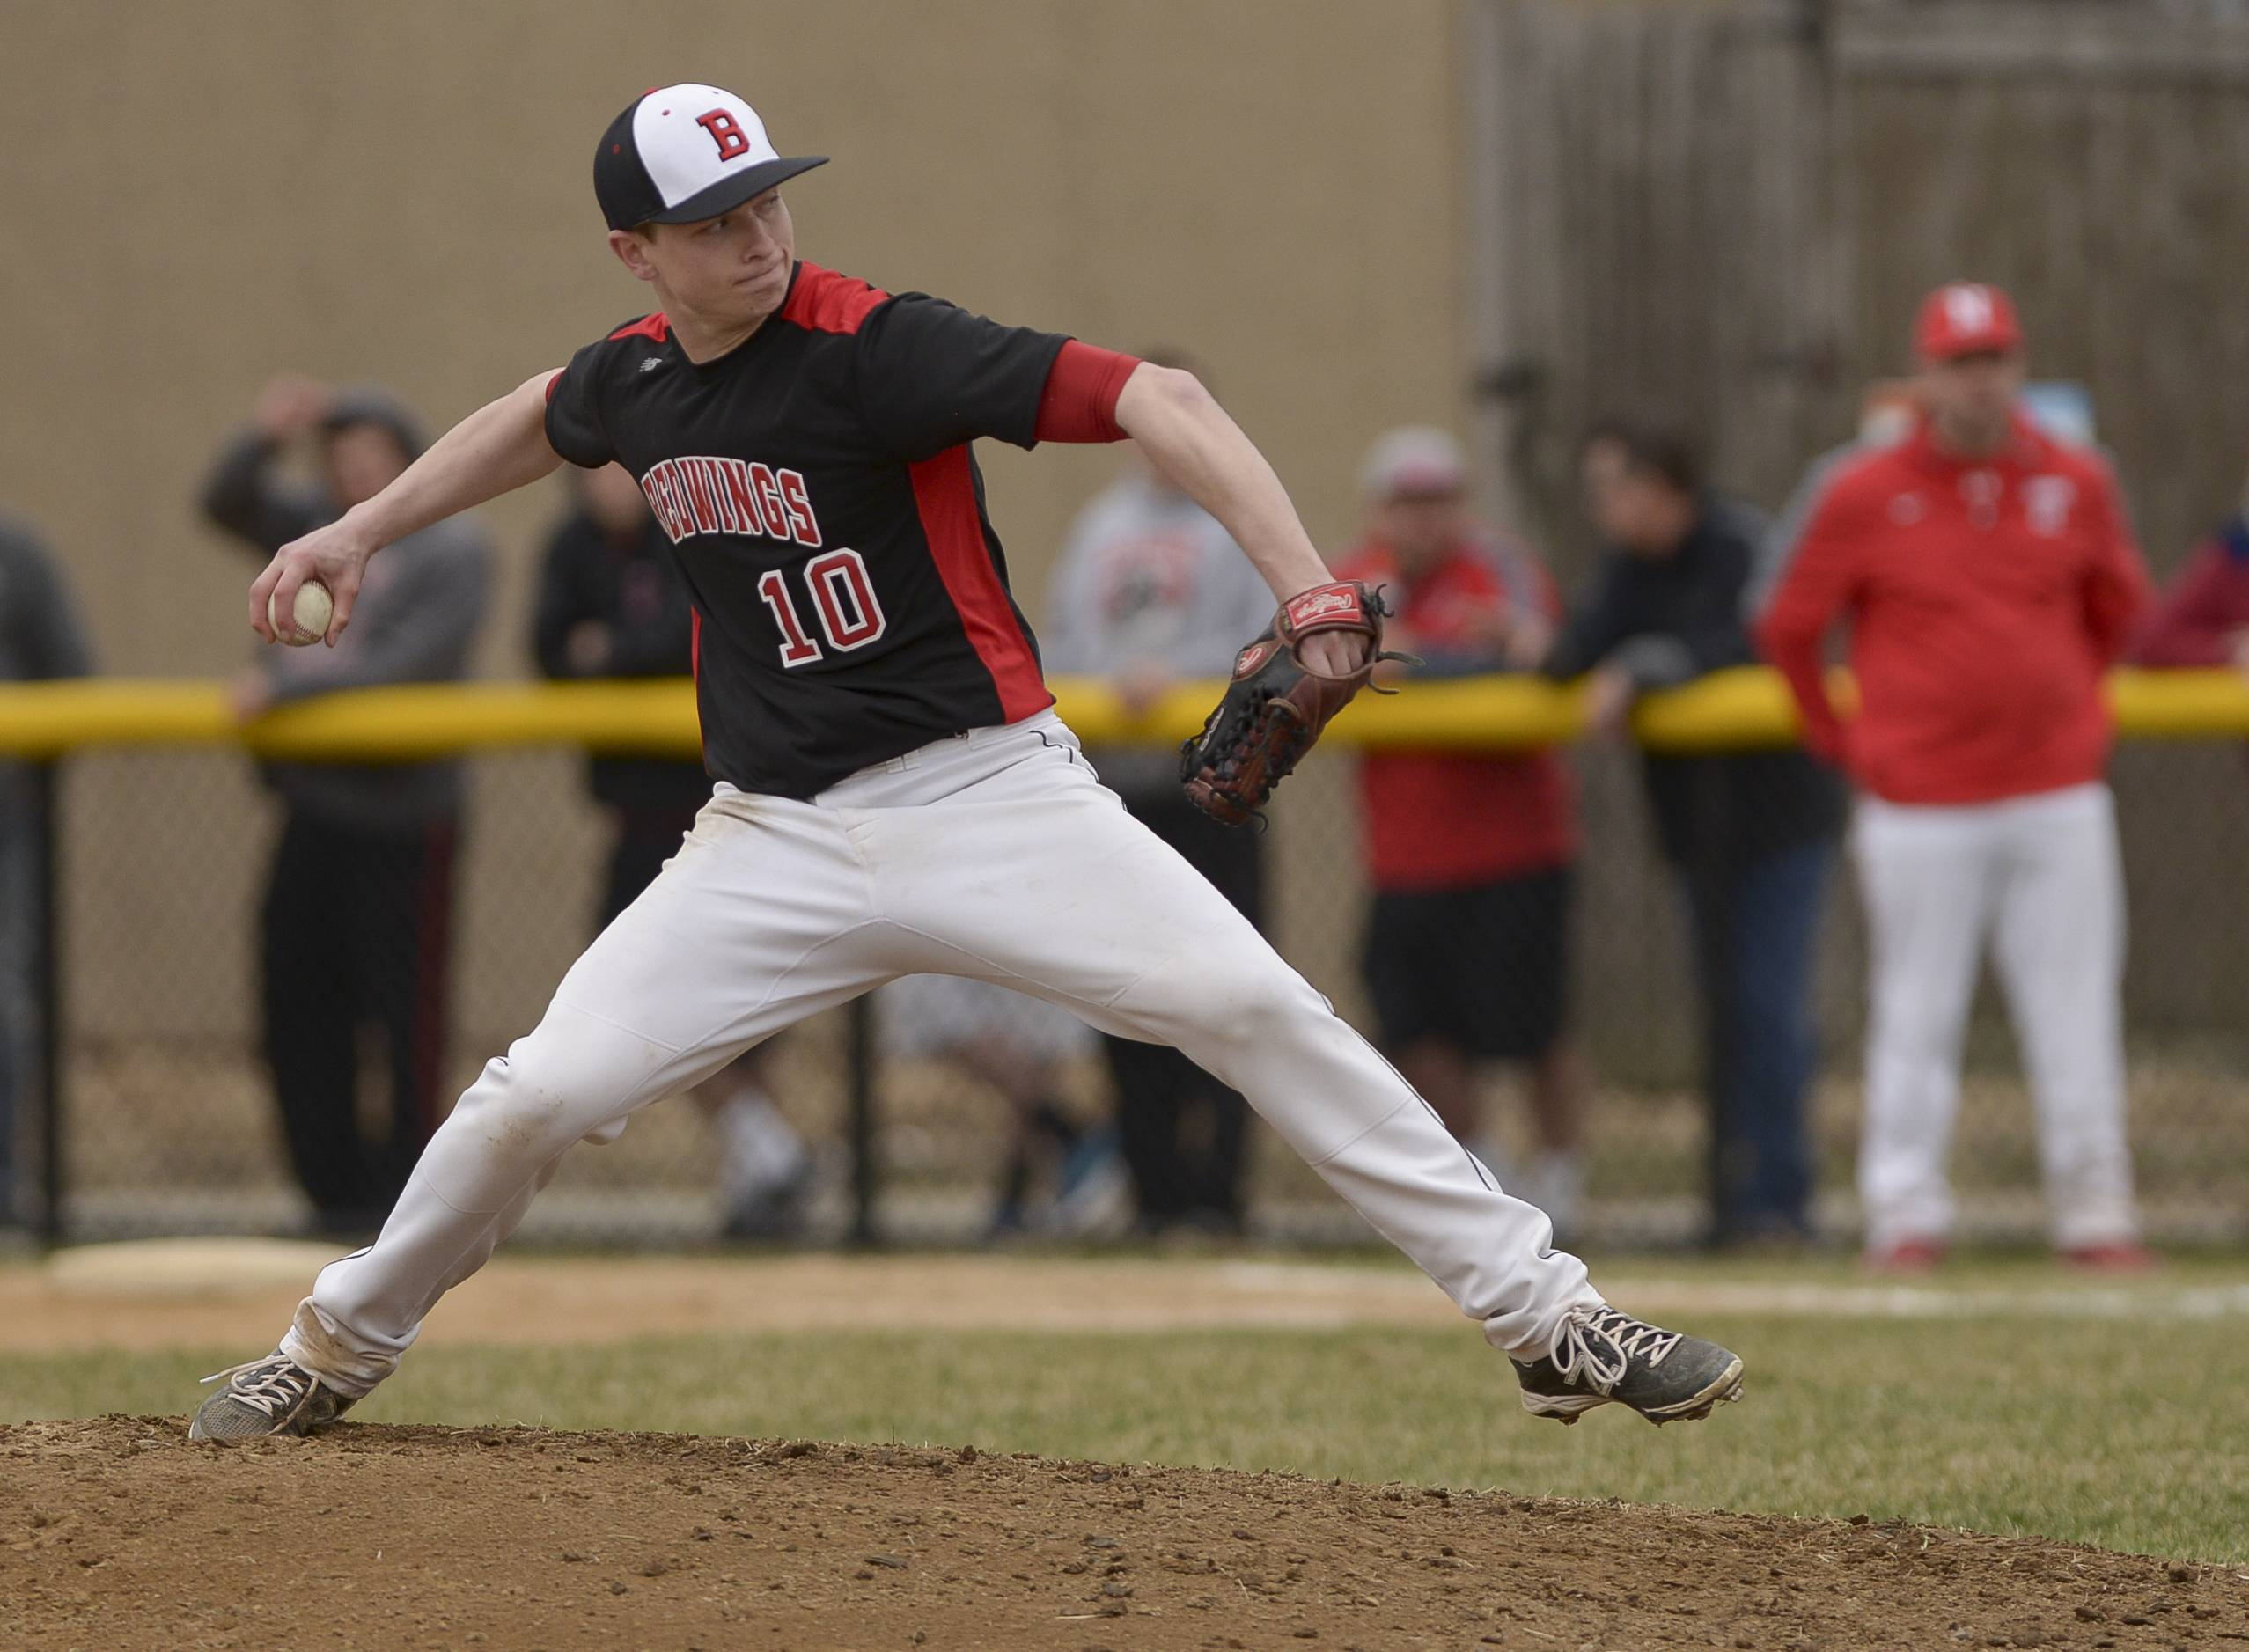 Benet Academy's Pat Peterson pitches during the Redwings 2-1 win over Naperville Central Thursday in Naperville.